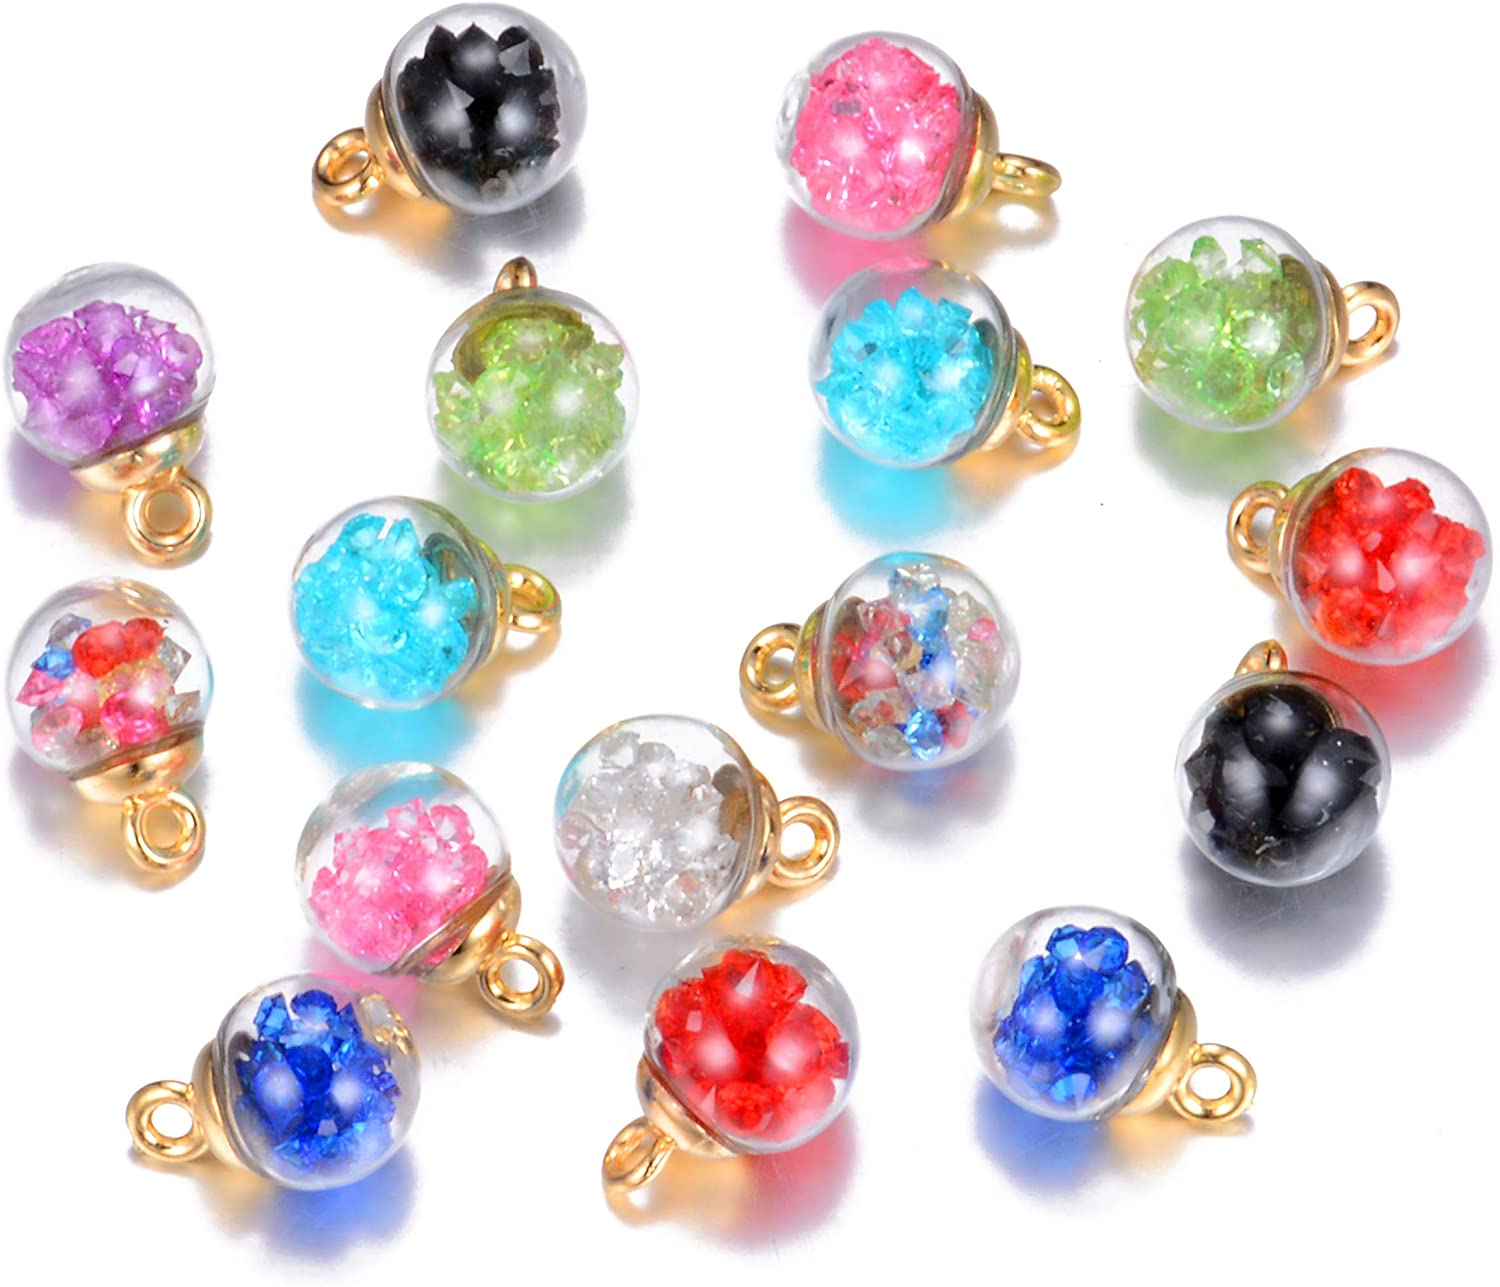 Max 74% OFF 18pcs 16mm Colorful Mix Max 81% OFF Lots Assorted-Colors Antique Charms Glas